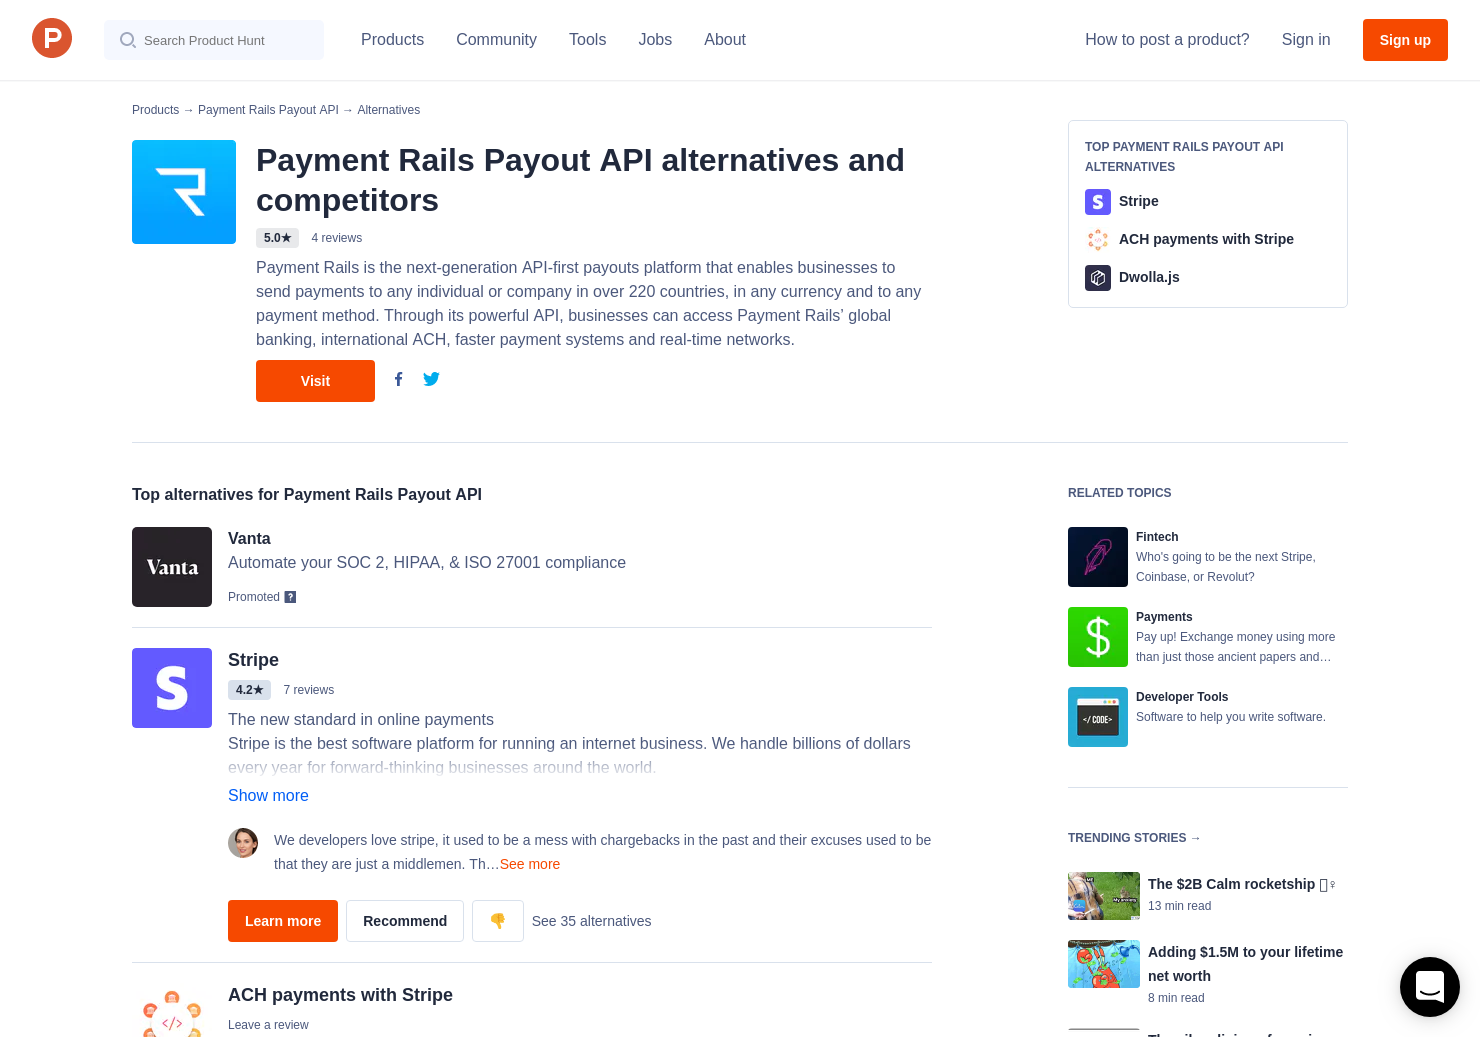 12 Alternatives to Payment Rails Payout API | Product Hunt